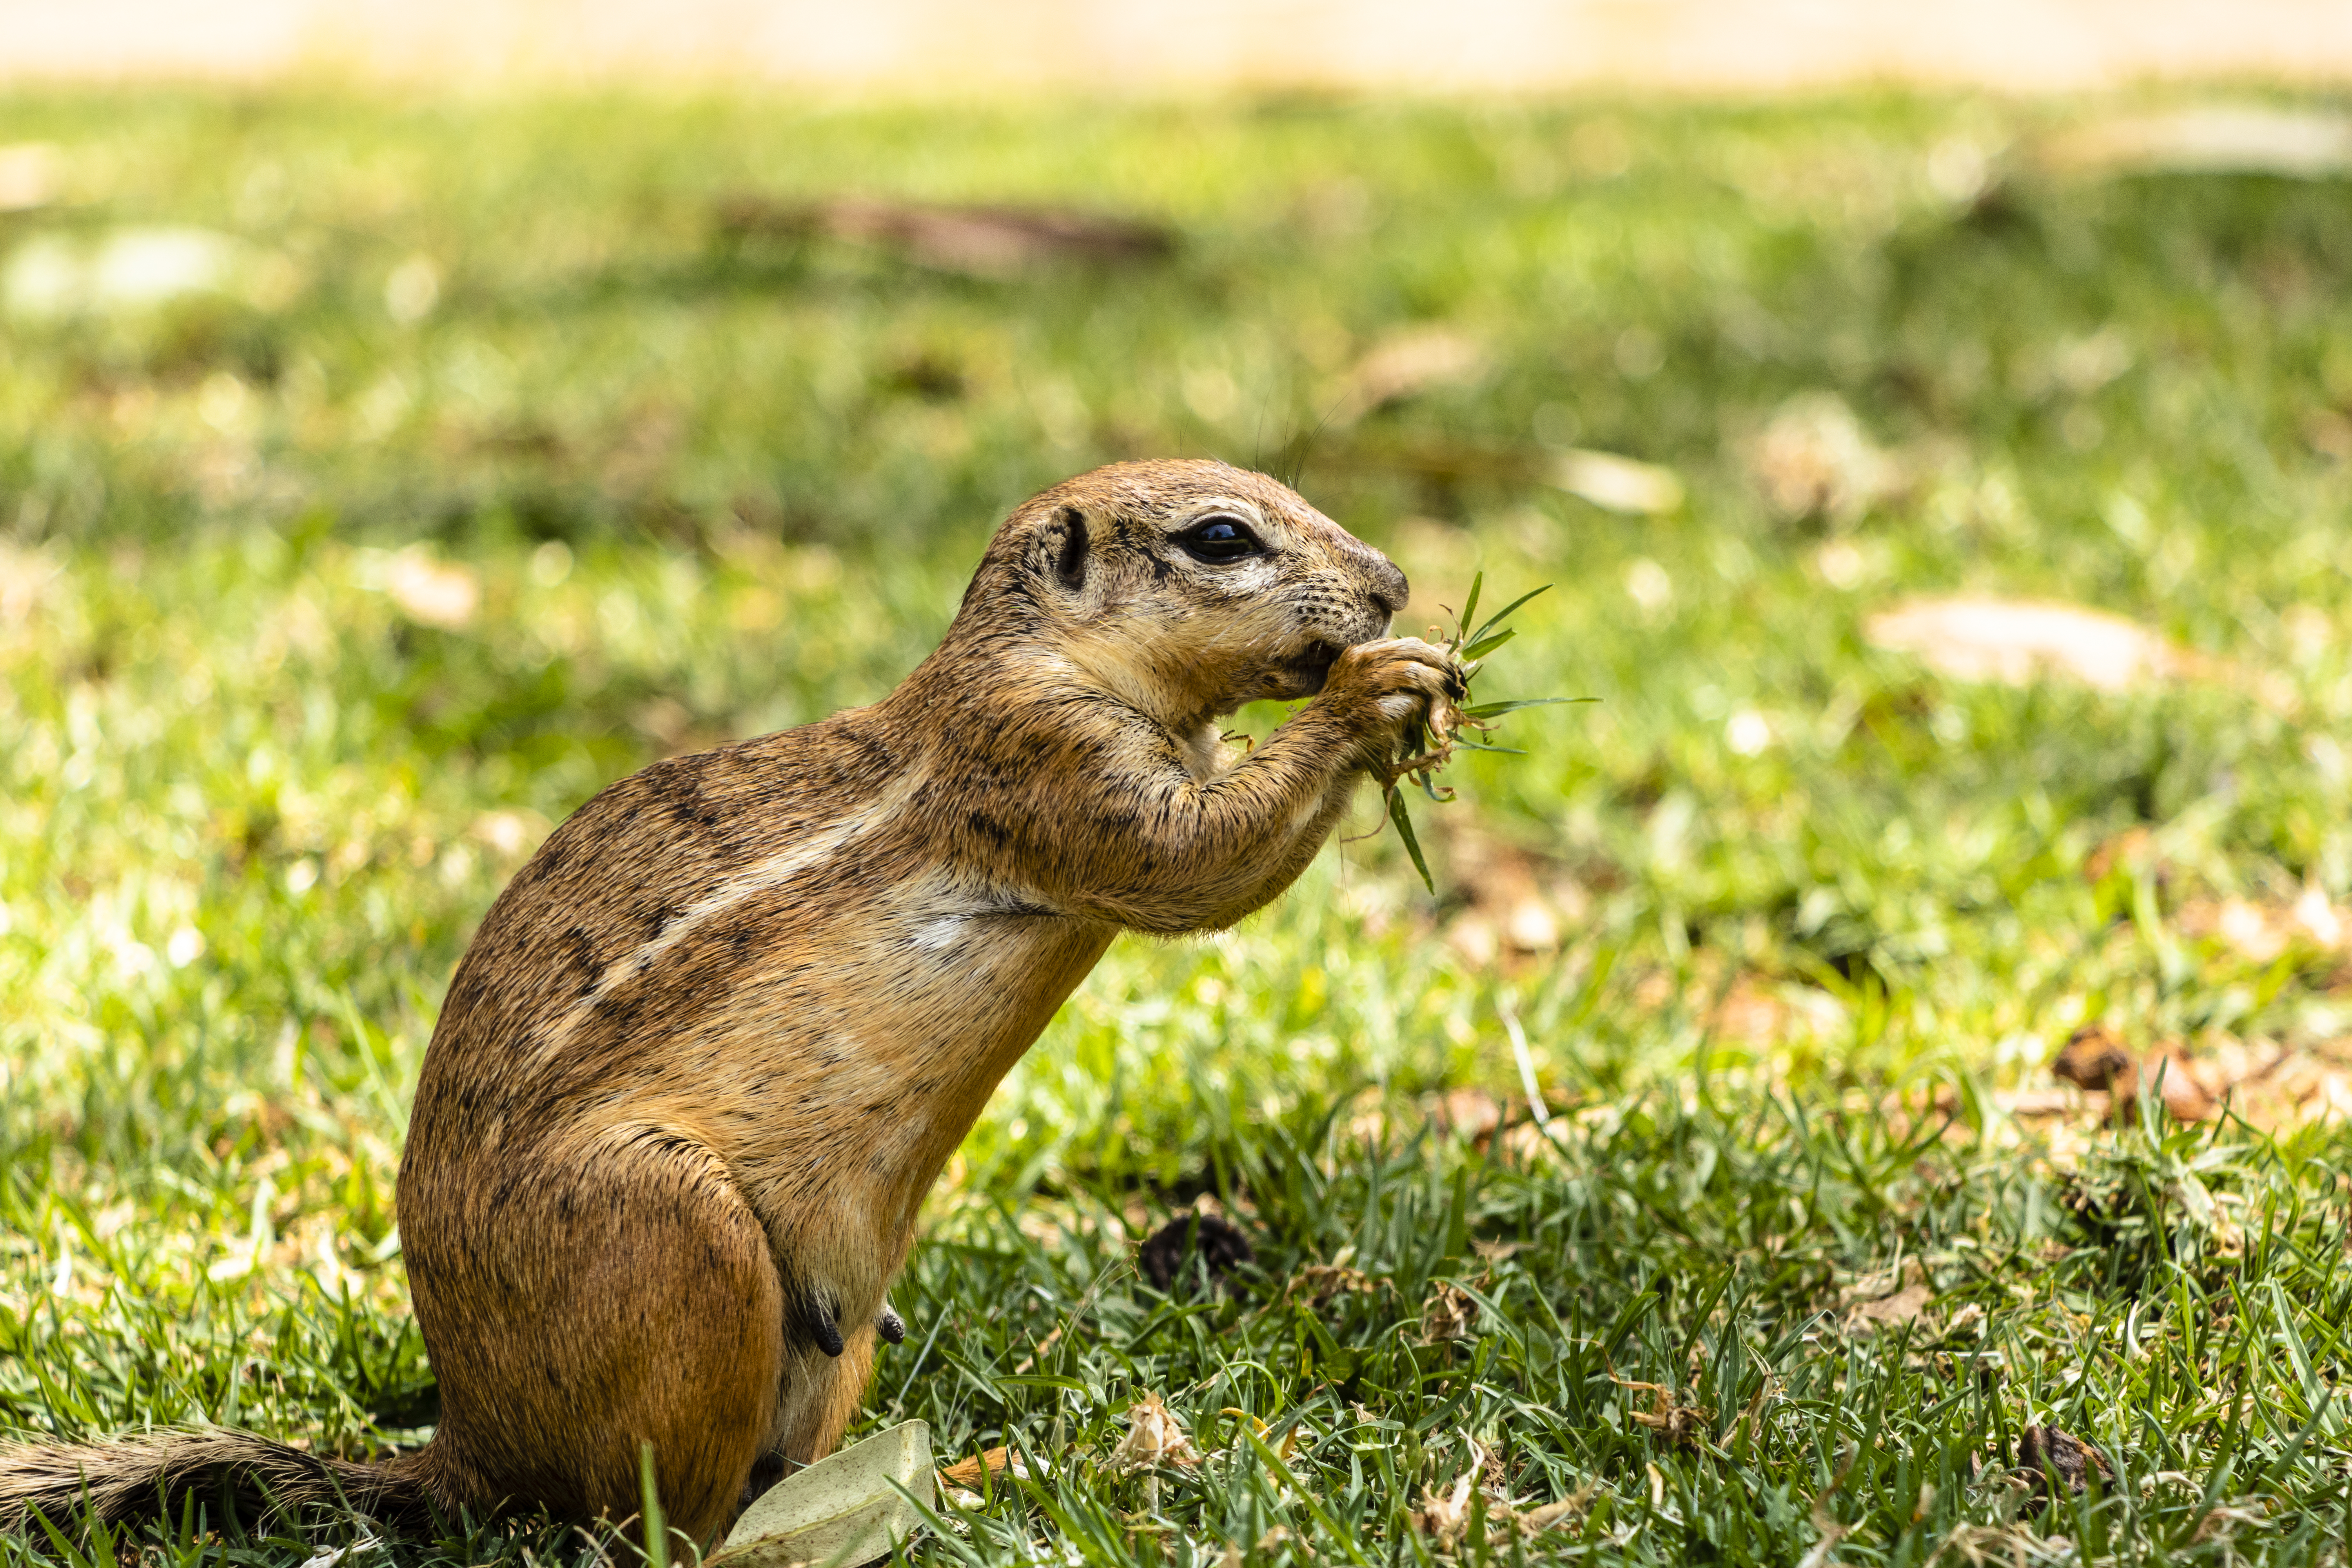 Smells That Squirrels Do Not Like | Home Guides | SF Gate